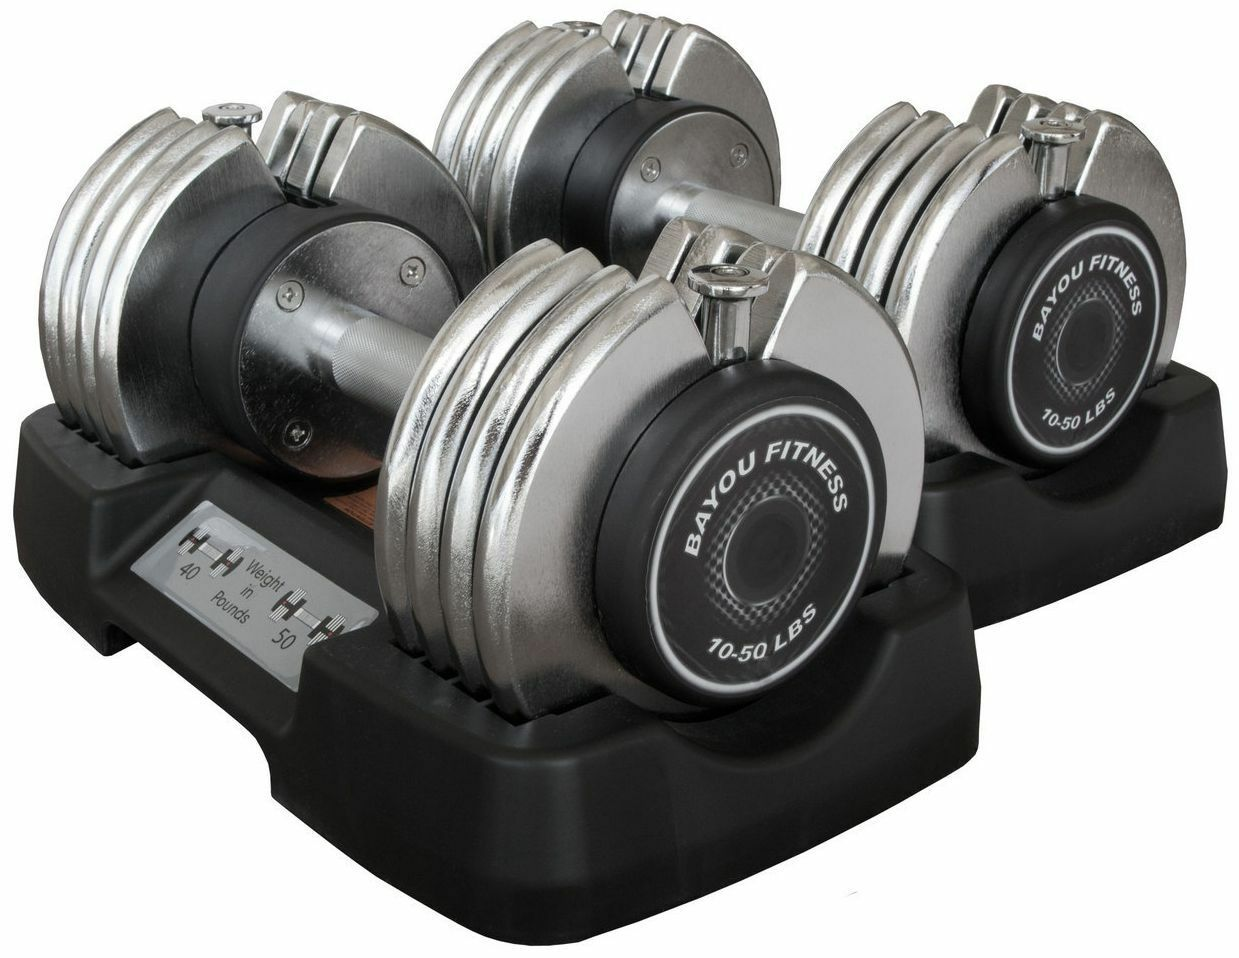 Bayou Fitness 10-50 lb Adjustable Dumbbells Set Pair of  2 Weight Exercise NEW  up to 60% off